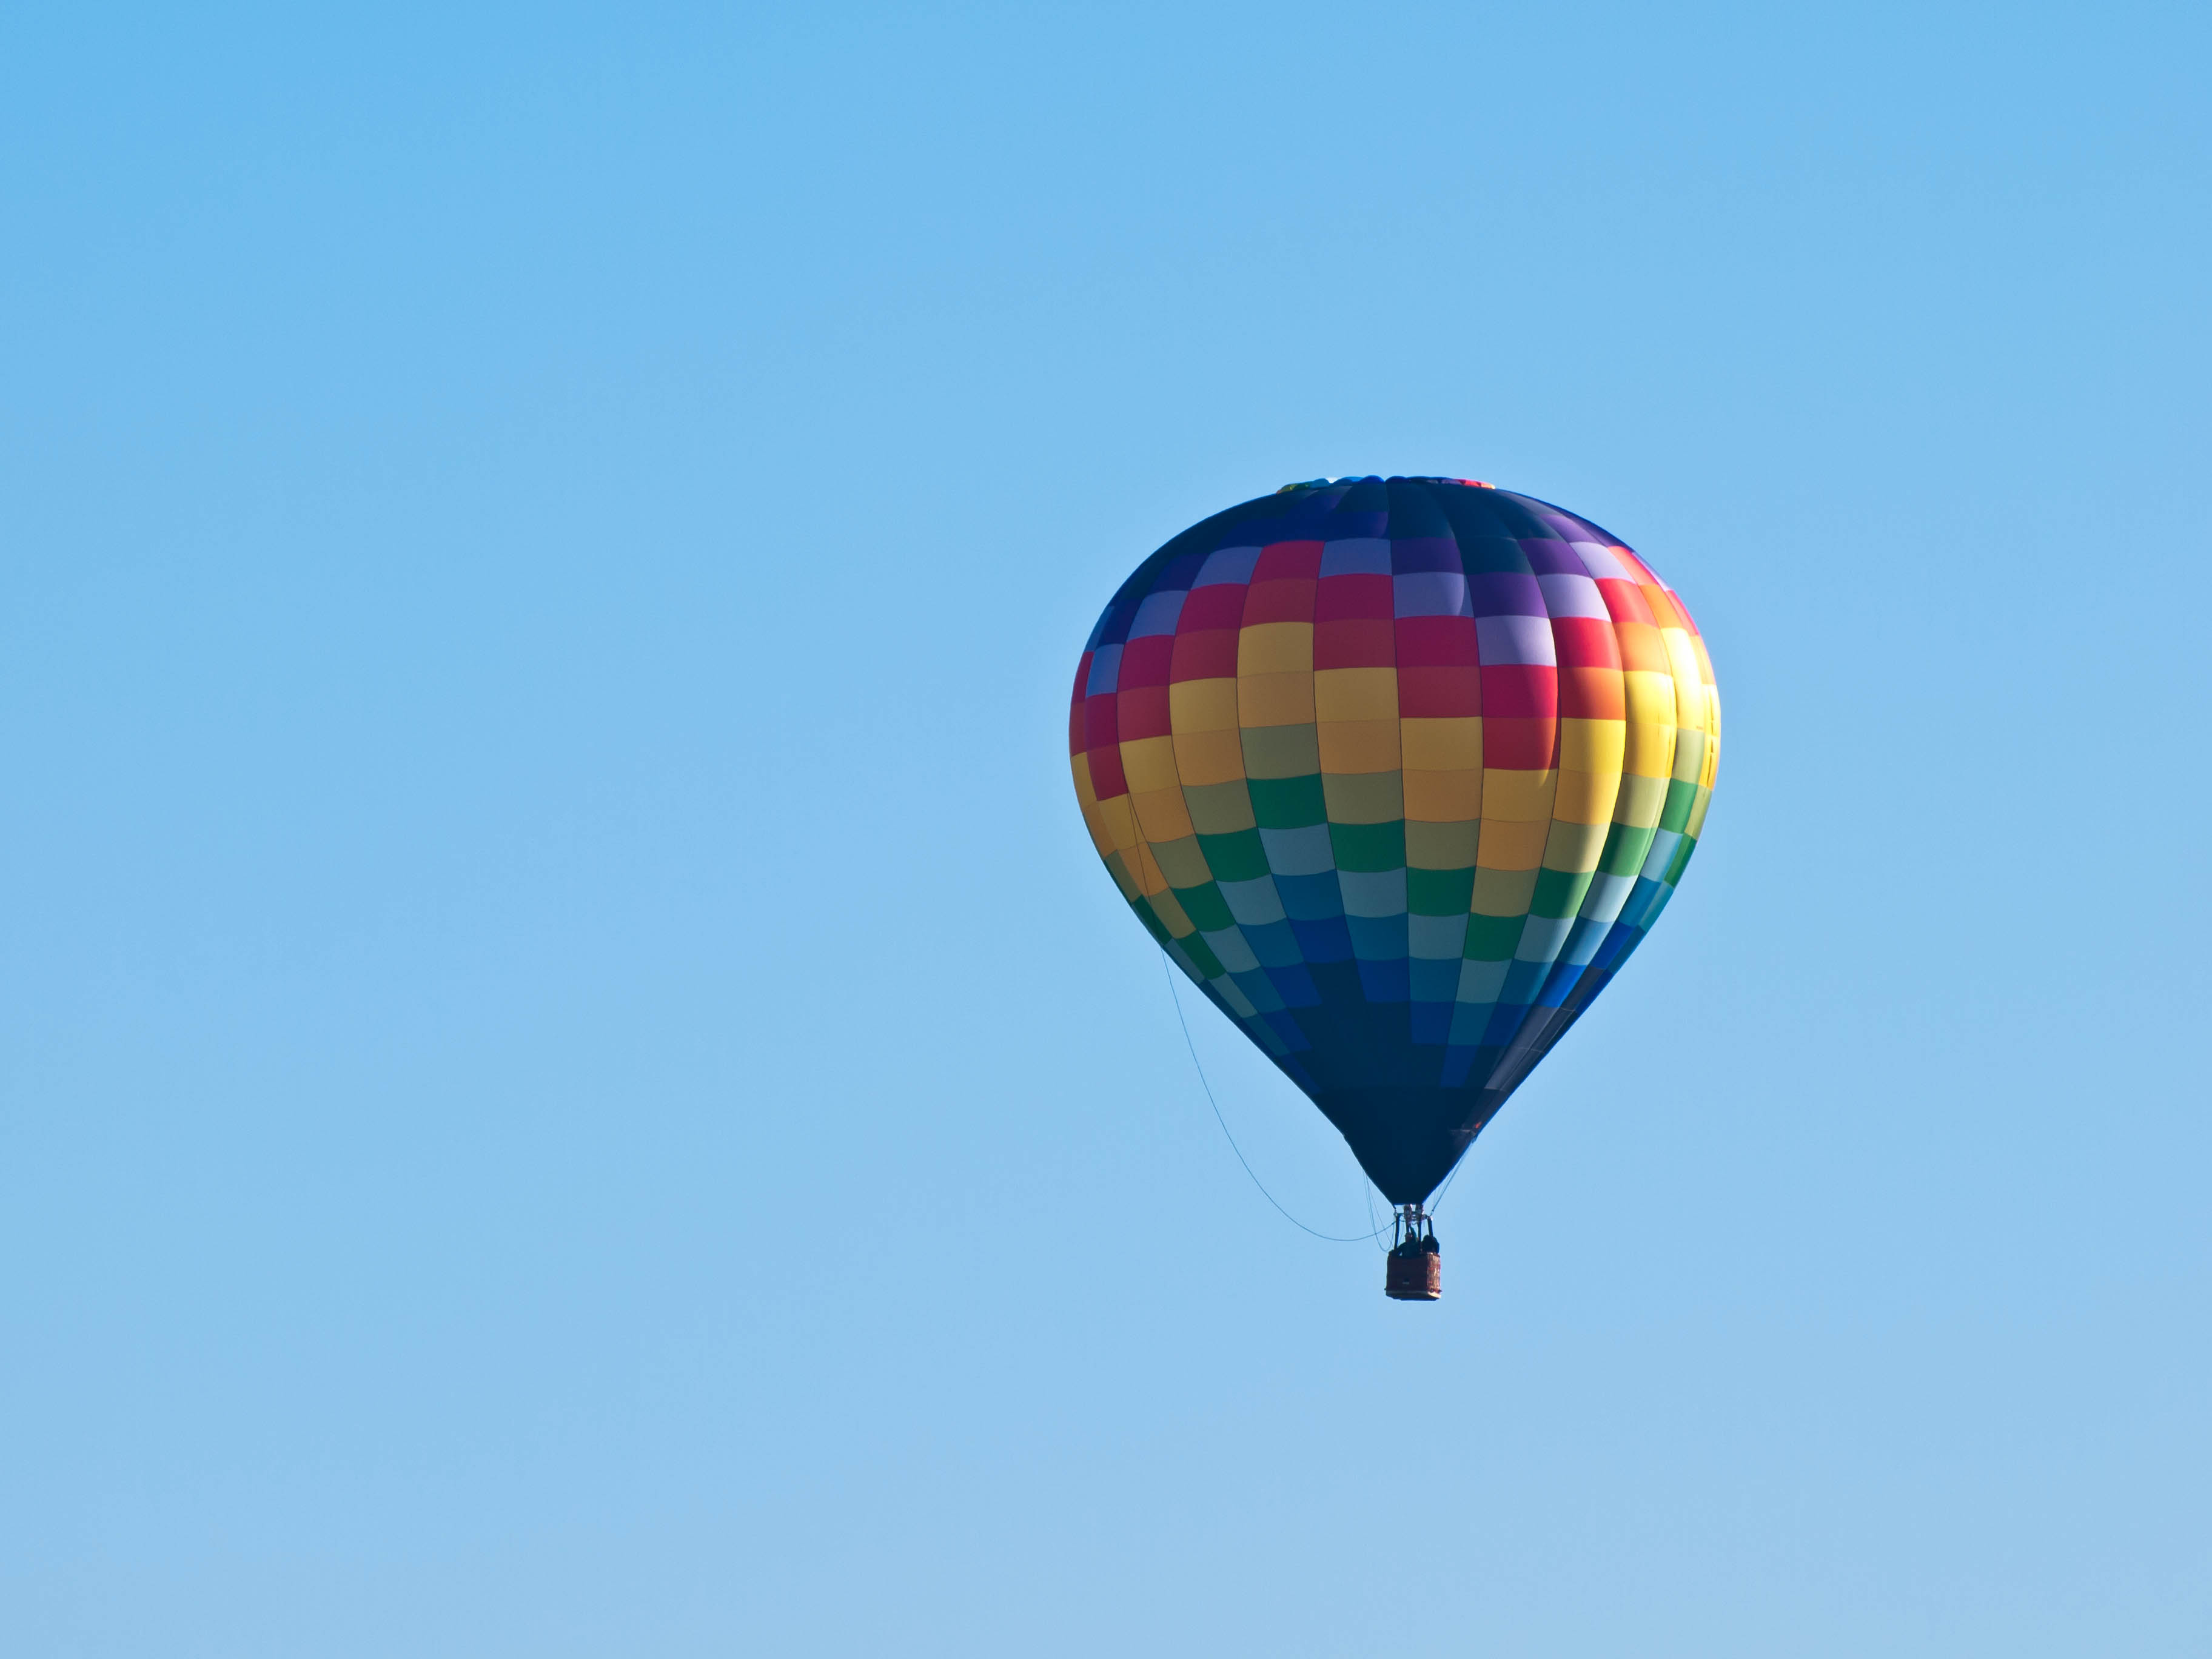 If I never take a balloon ride, I will be just fine. I like to stay grounded if you know what I mean.